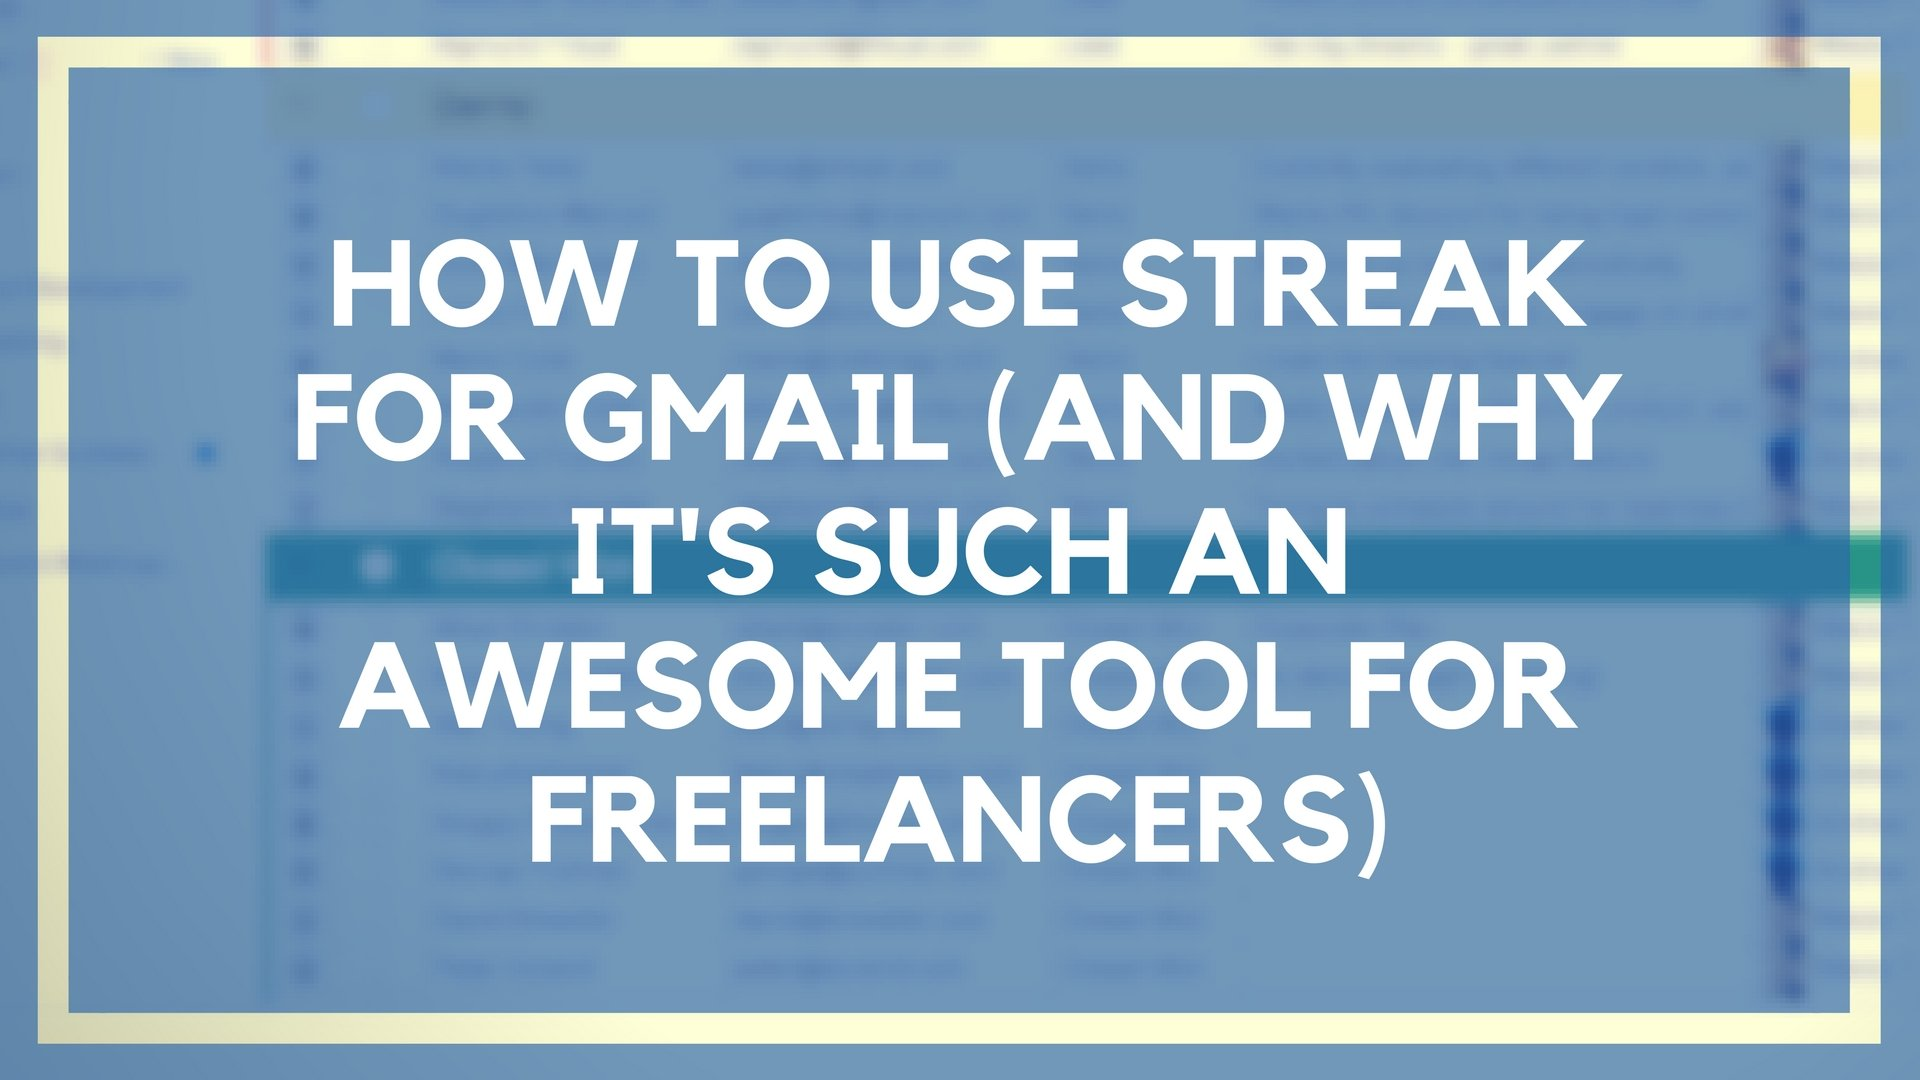 How to Use Streak for Gmail (And Why It's Such an Awesome Tool for Freelancers)